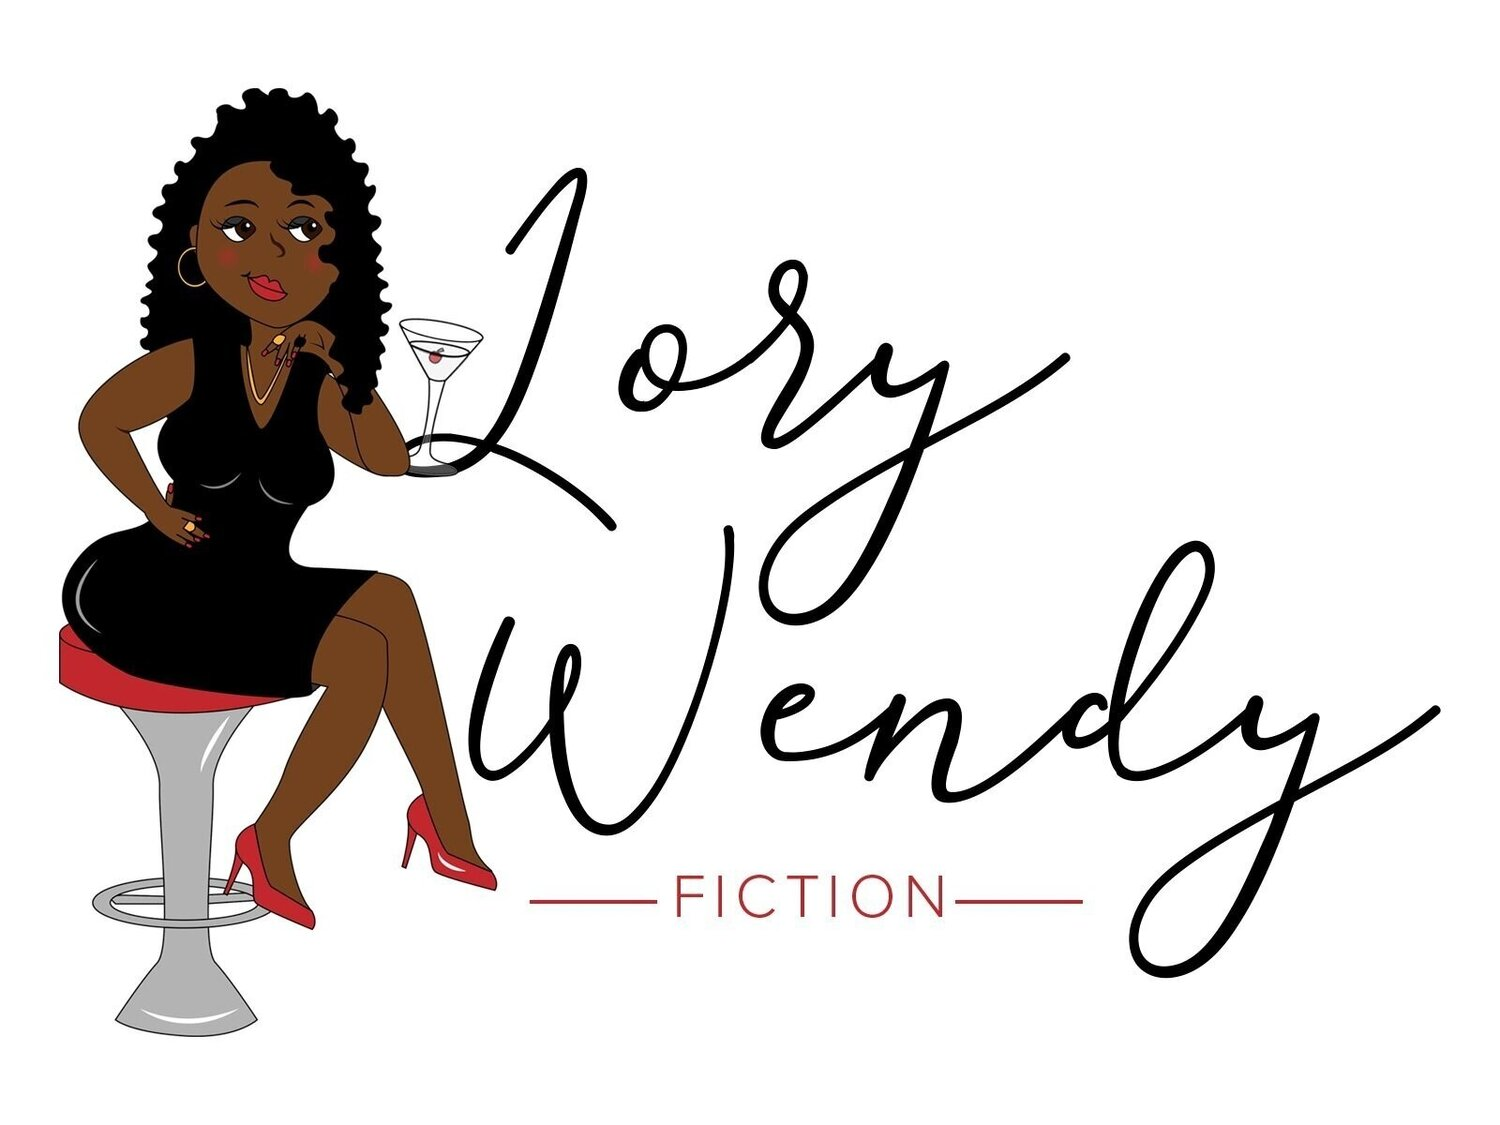 Lory Wendy - Fiction